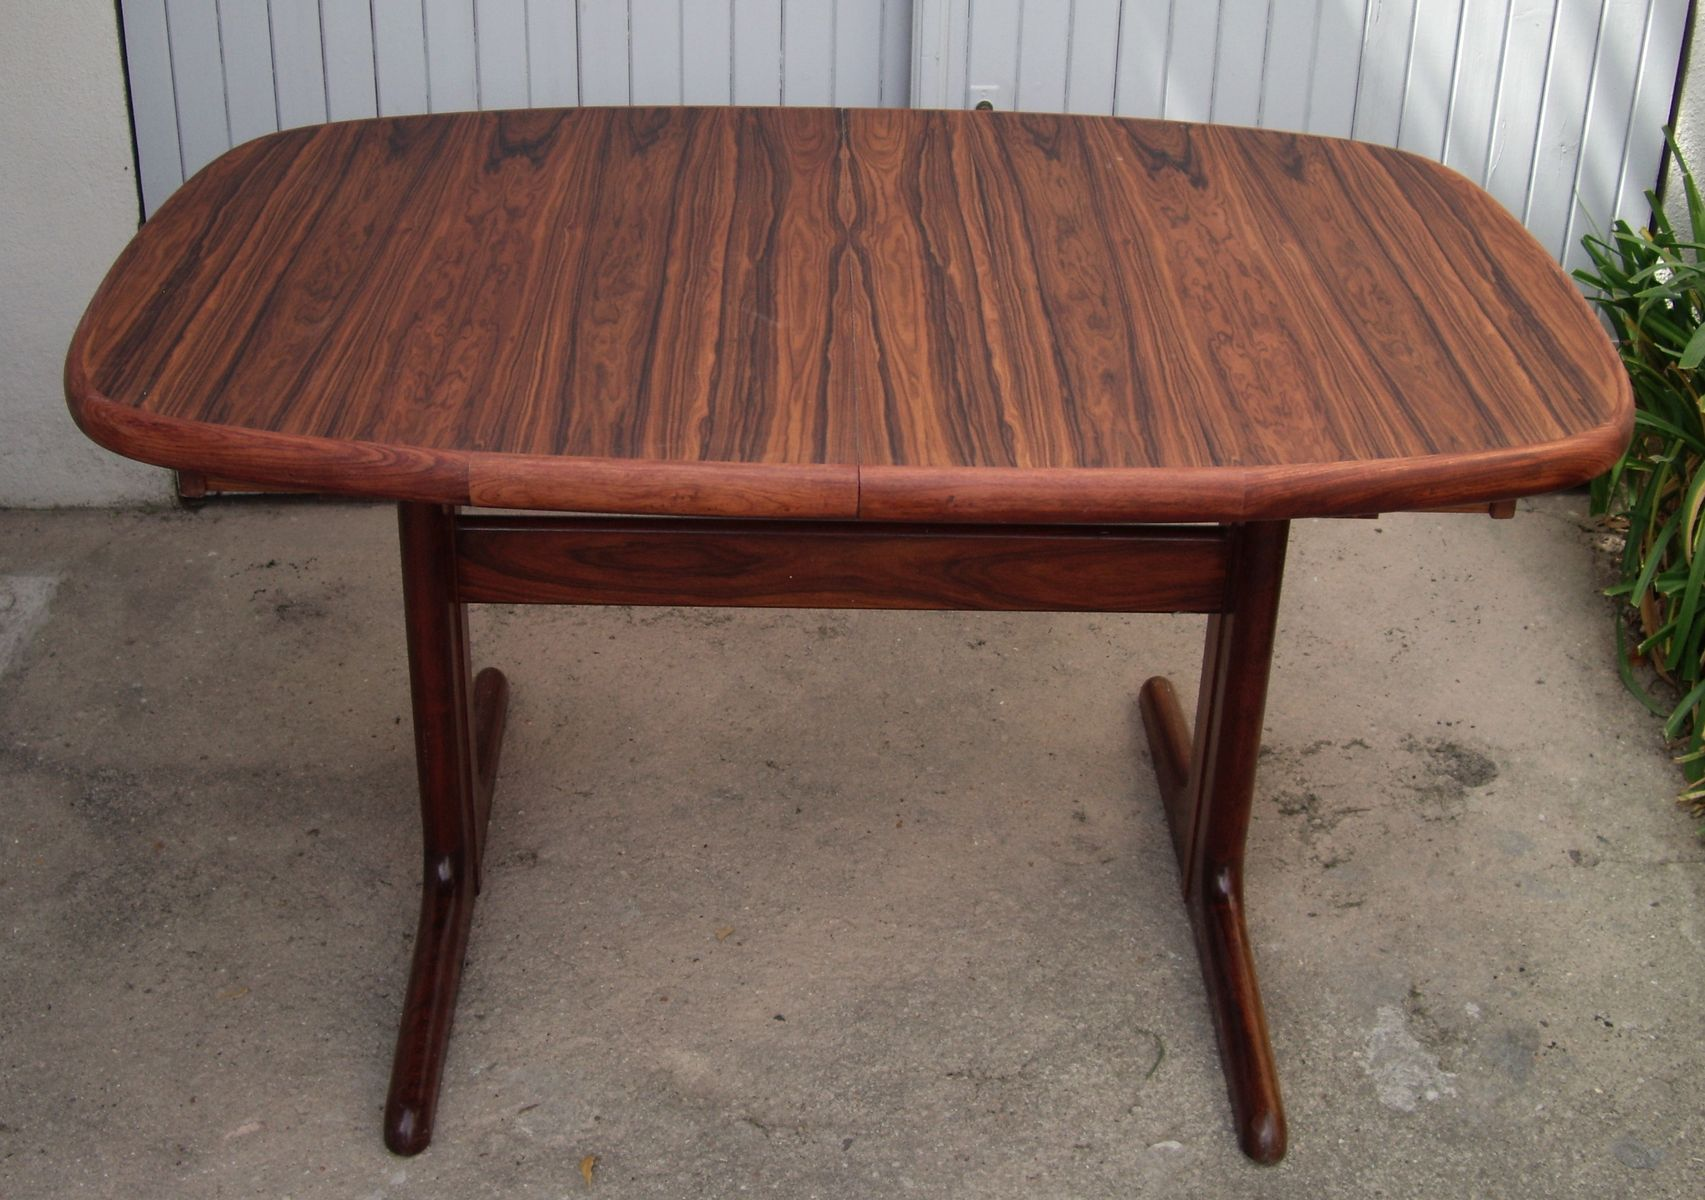 Vintage Danish Rosewood Dining Table from Skovby for sale at Pamono